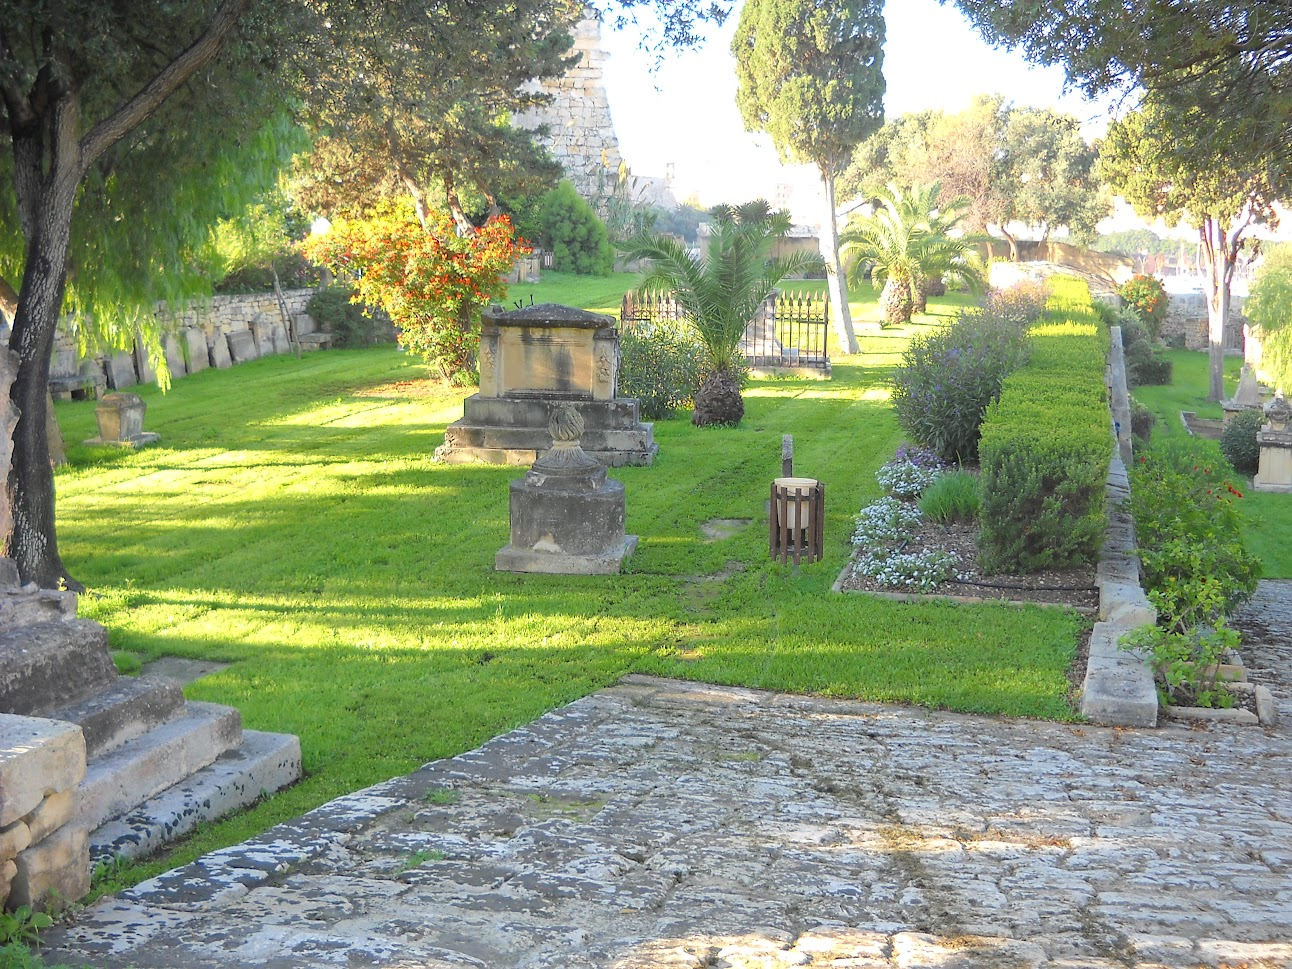 Msida Bastion Cemetery and Historic Garden